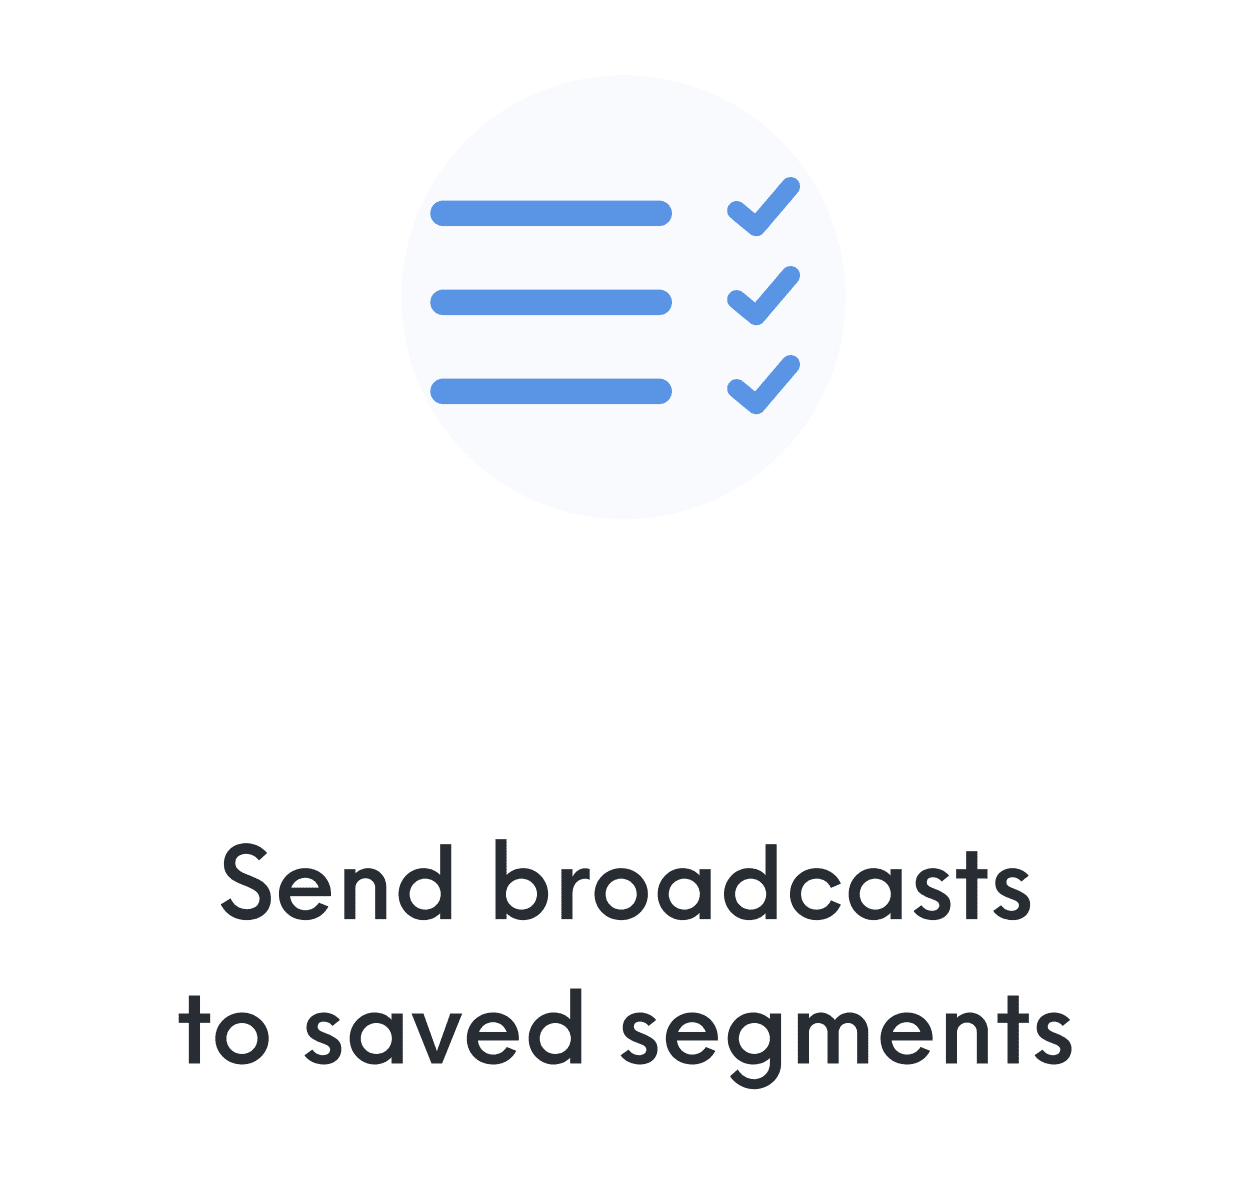 SMS broadcast to saved segments